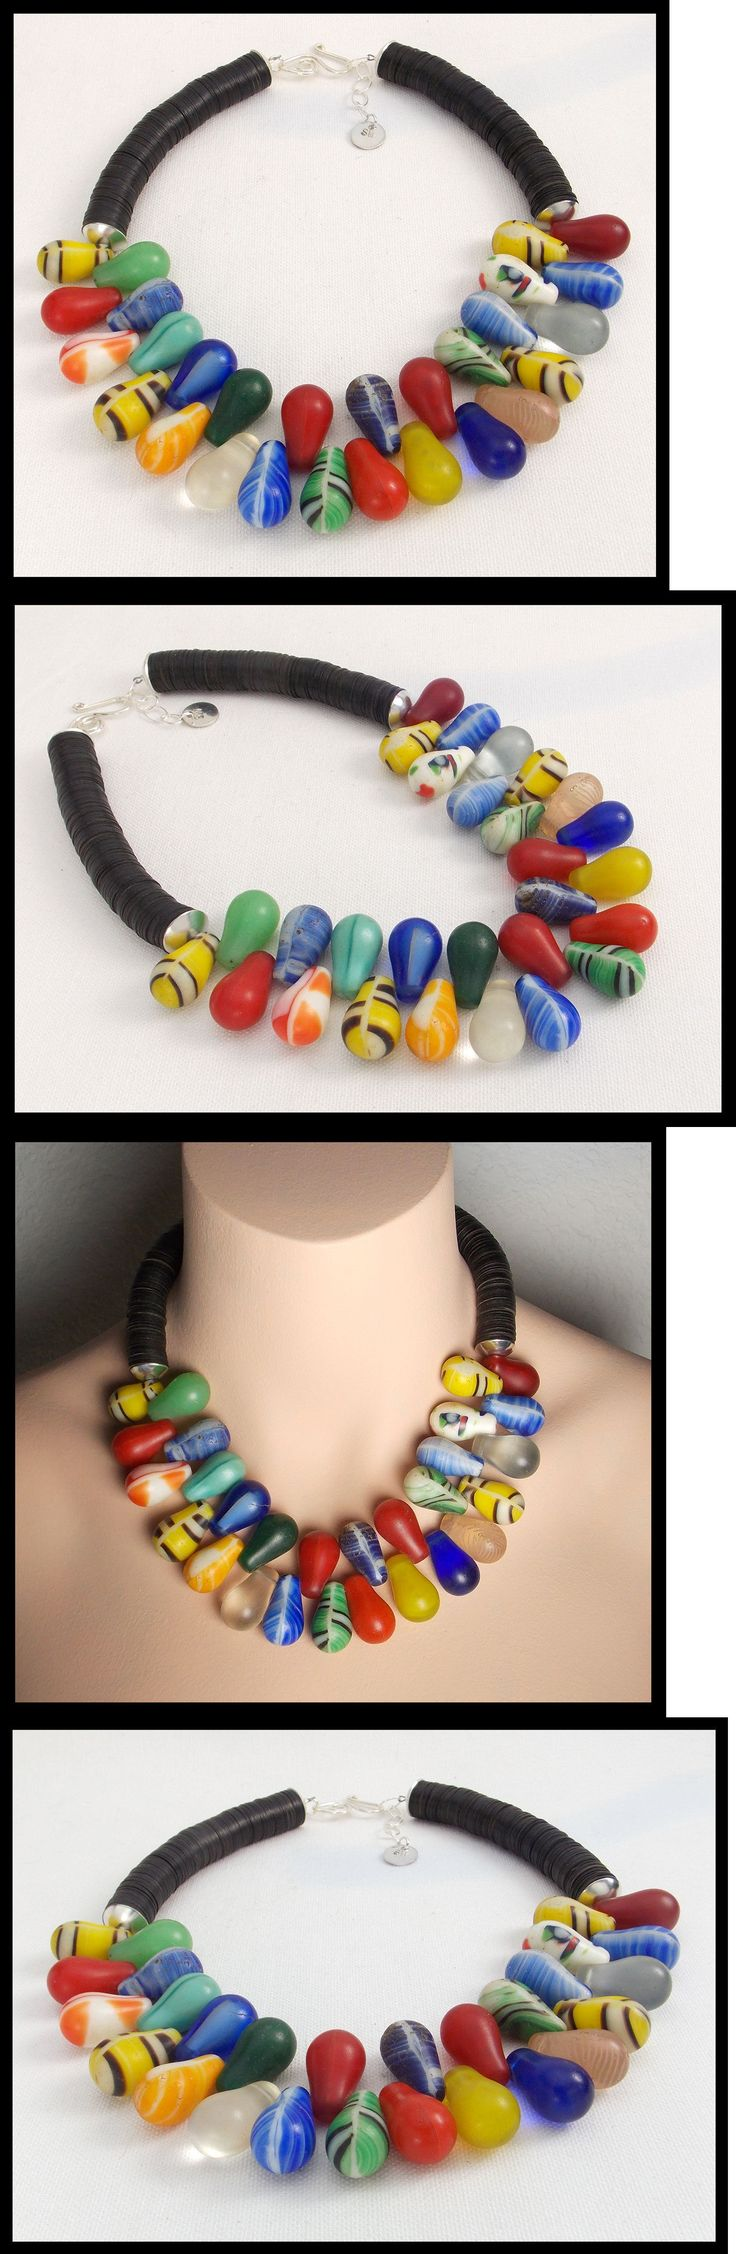 Necklaces and Pendants 98481: Mali - Mali Wedding Beads - African Vulcanite 1 Of A Kind Statement Necklace BUY IT NOW ONLY: $220.0